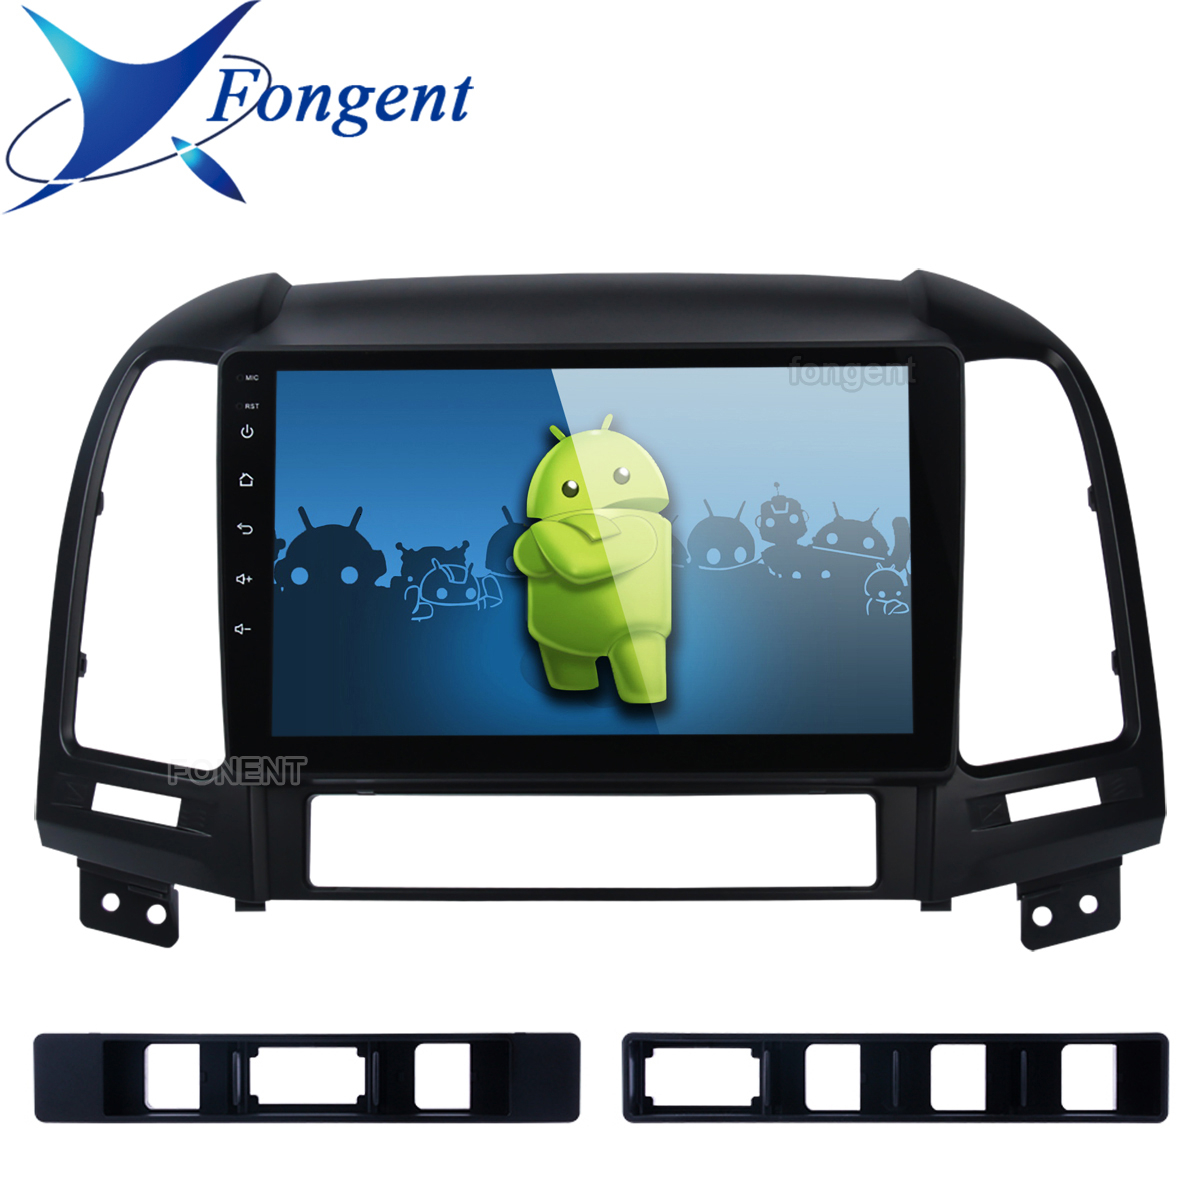 Android 9.0 Head Unit For <font><b>Hyundai</b></font> <font><b>Santa</b></font> <font><b>Fe</b></font> 2005 2006 2007 2008 2009 <font><b>2010</b></font> 2011 2012 Car Radio Multimedia Player <font><b>Gps</b></font> Stereo Audio image